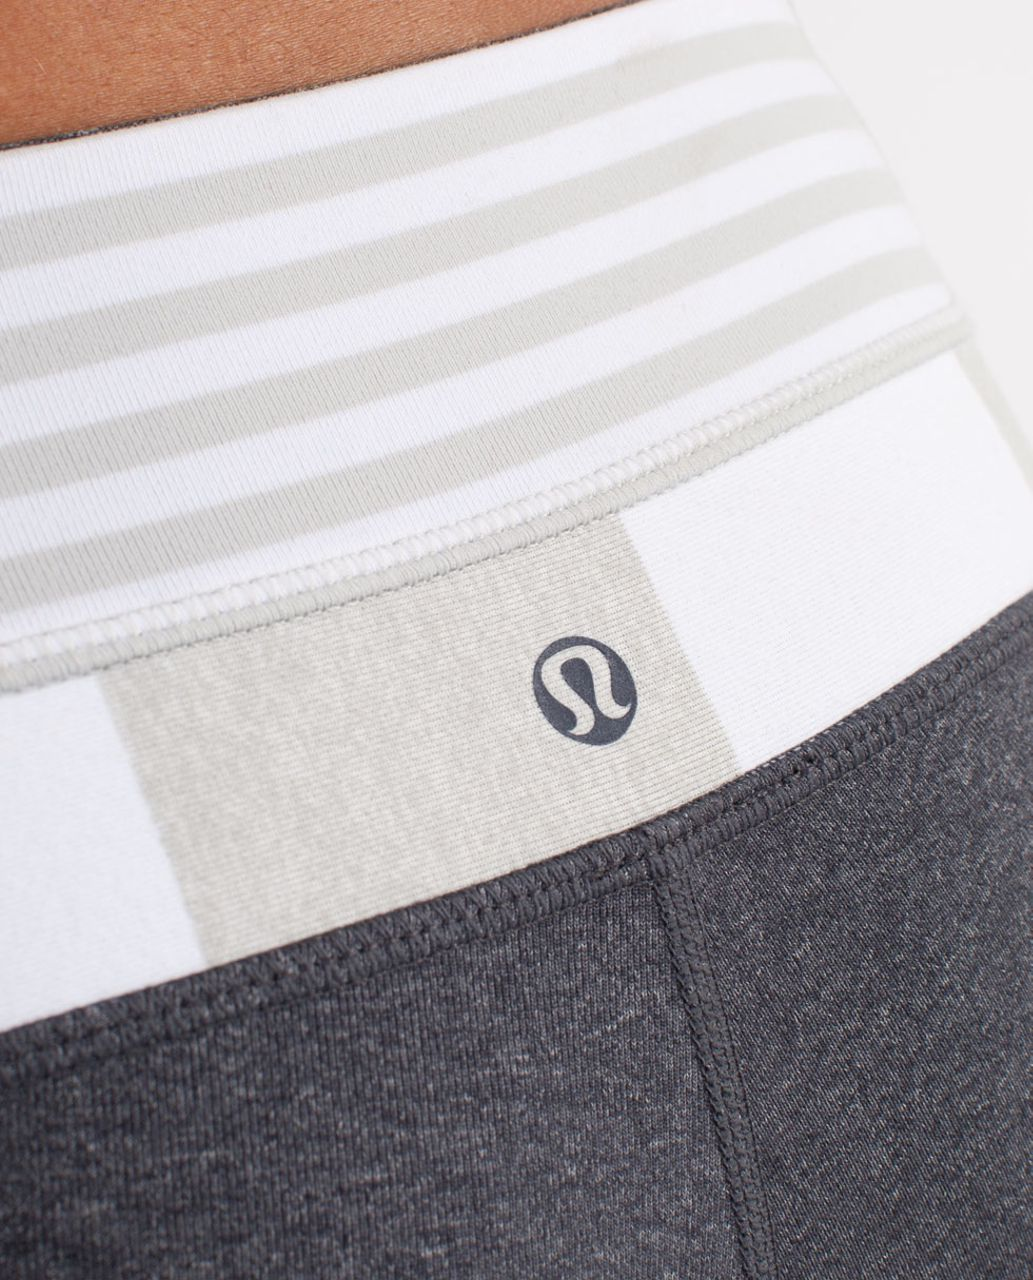 Lululemon Groove Pant (Tall) - Heathered Deep Coal /  Silver Spoon White Narrow Bold Multi Stripe /  White Silver Spooi